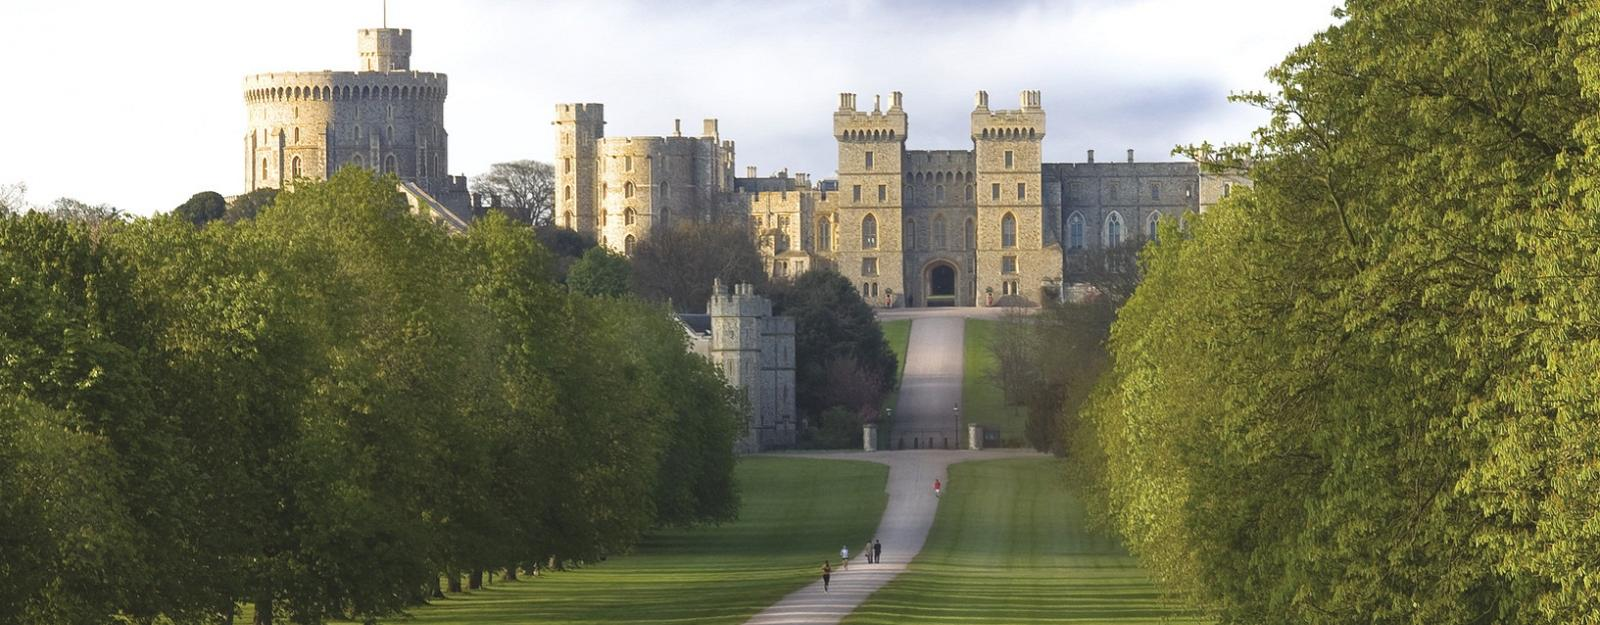 Windsor Castle. Photographer: Edward Staines